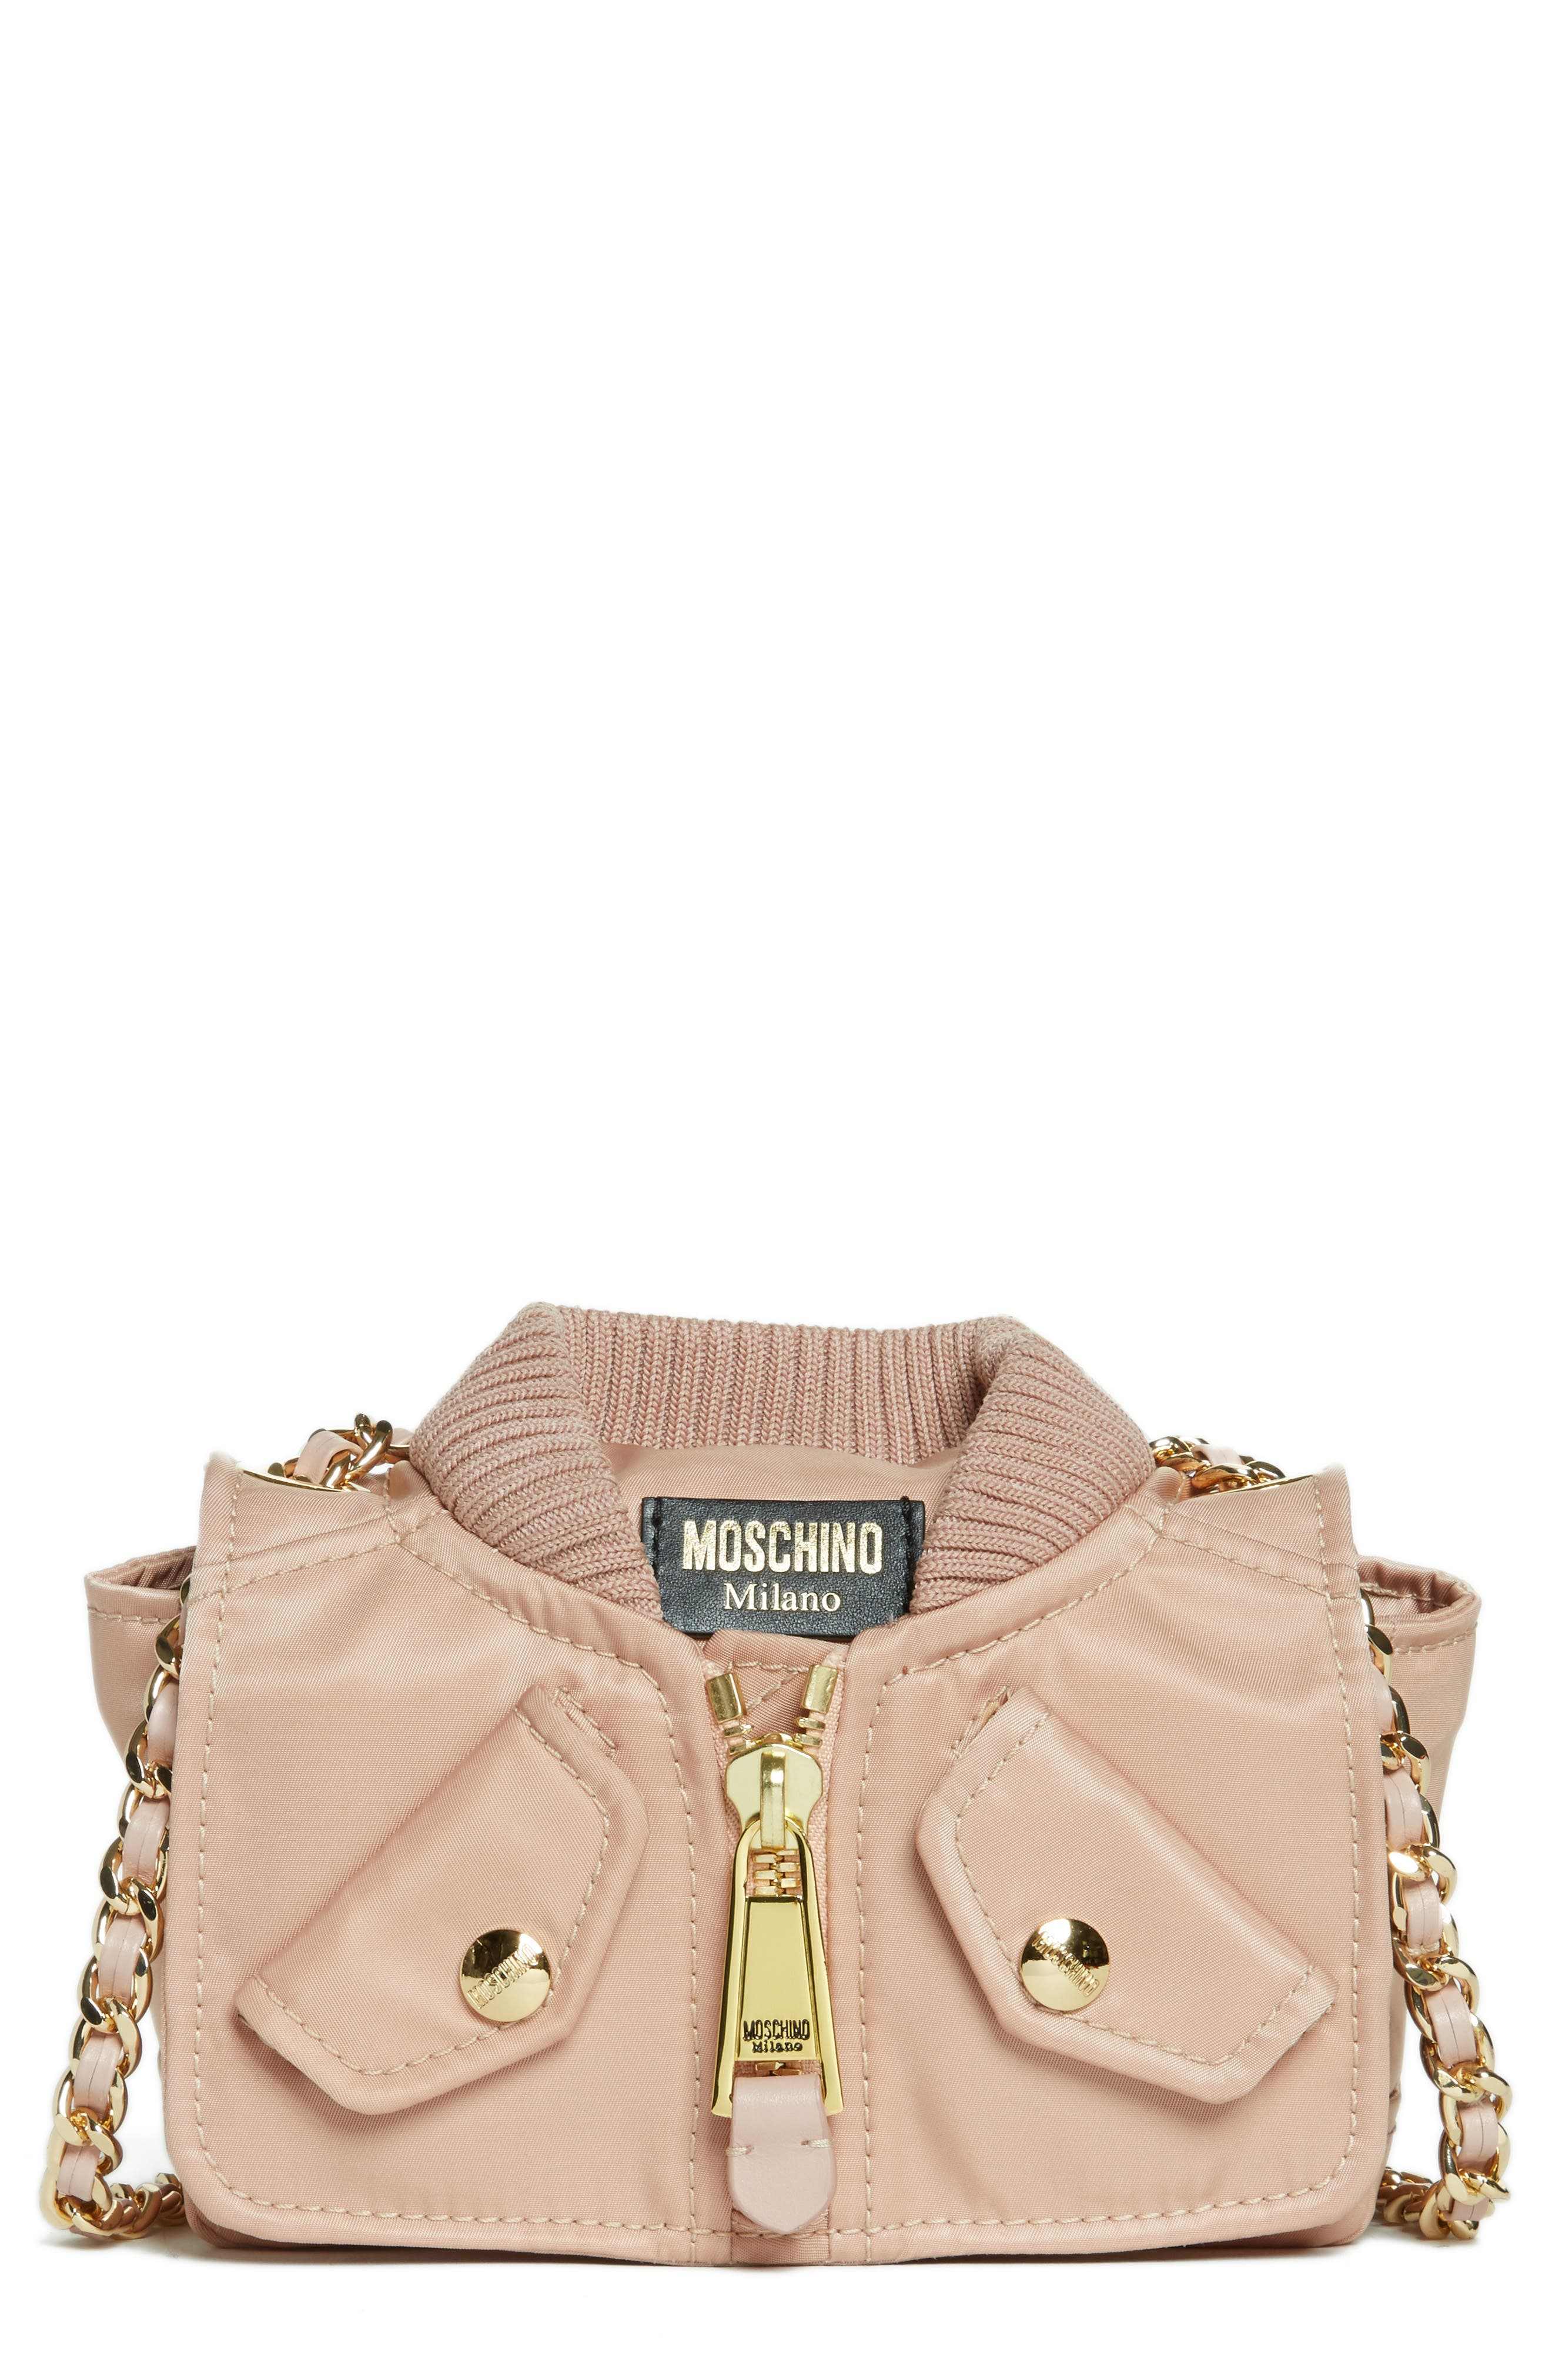 Moschino Small Biker Jacket Nylon Shoulder Bag